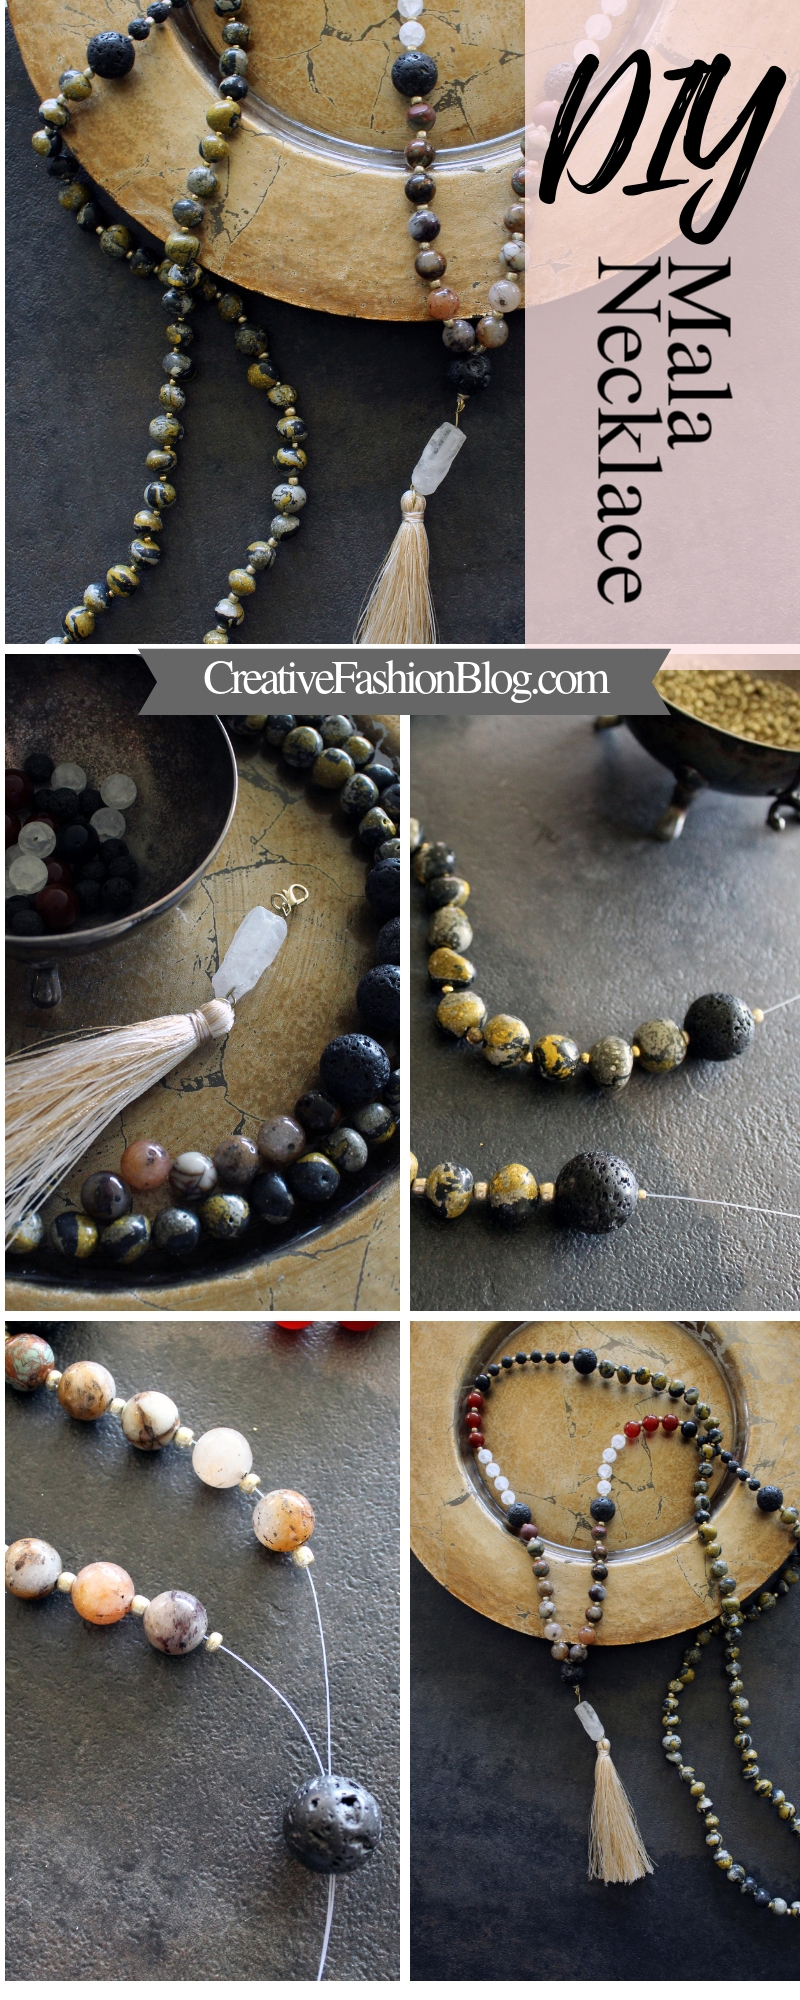 Make Your Own DIY Crystal Mala Beads for Meditation and Goal Setting..